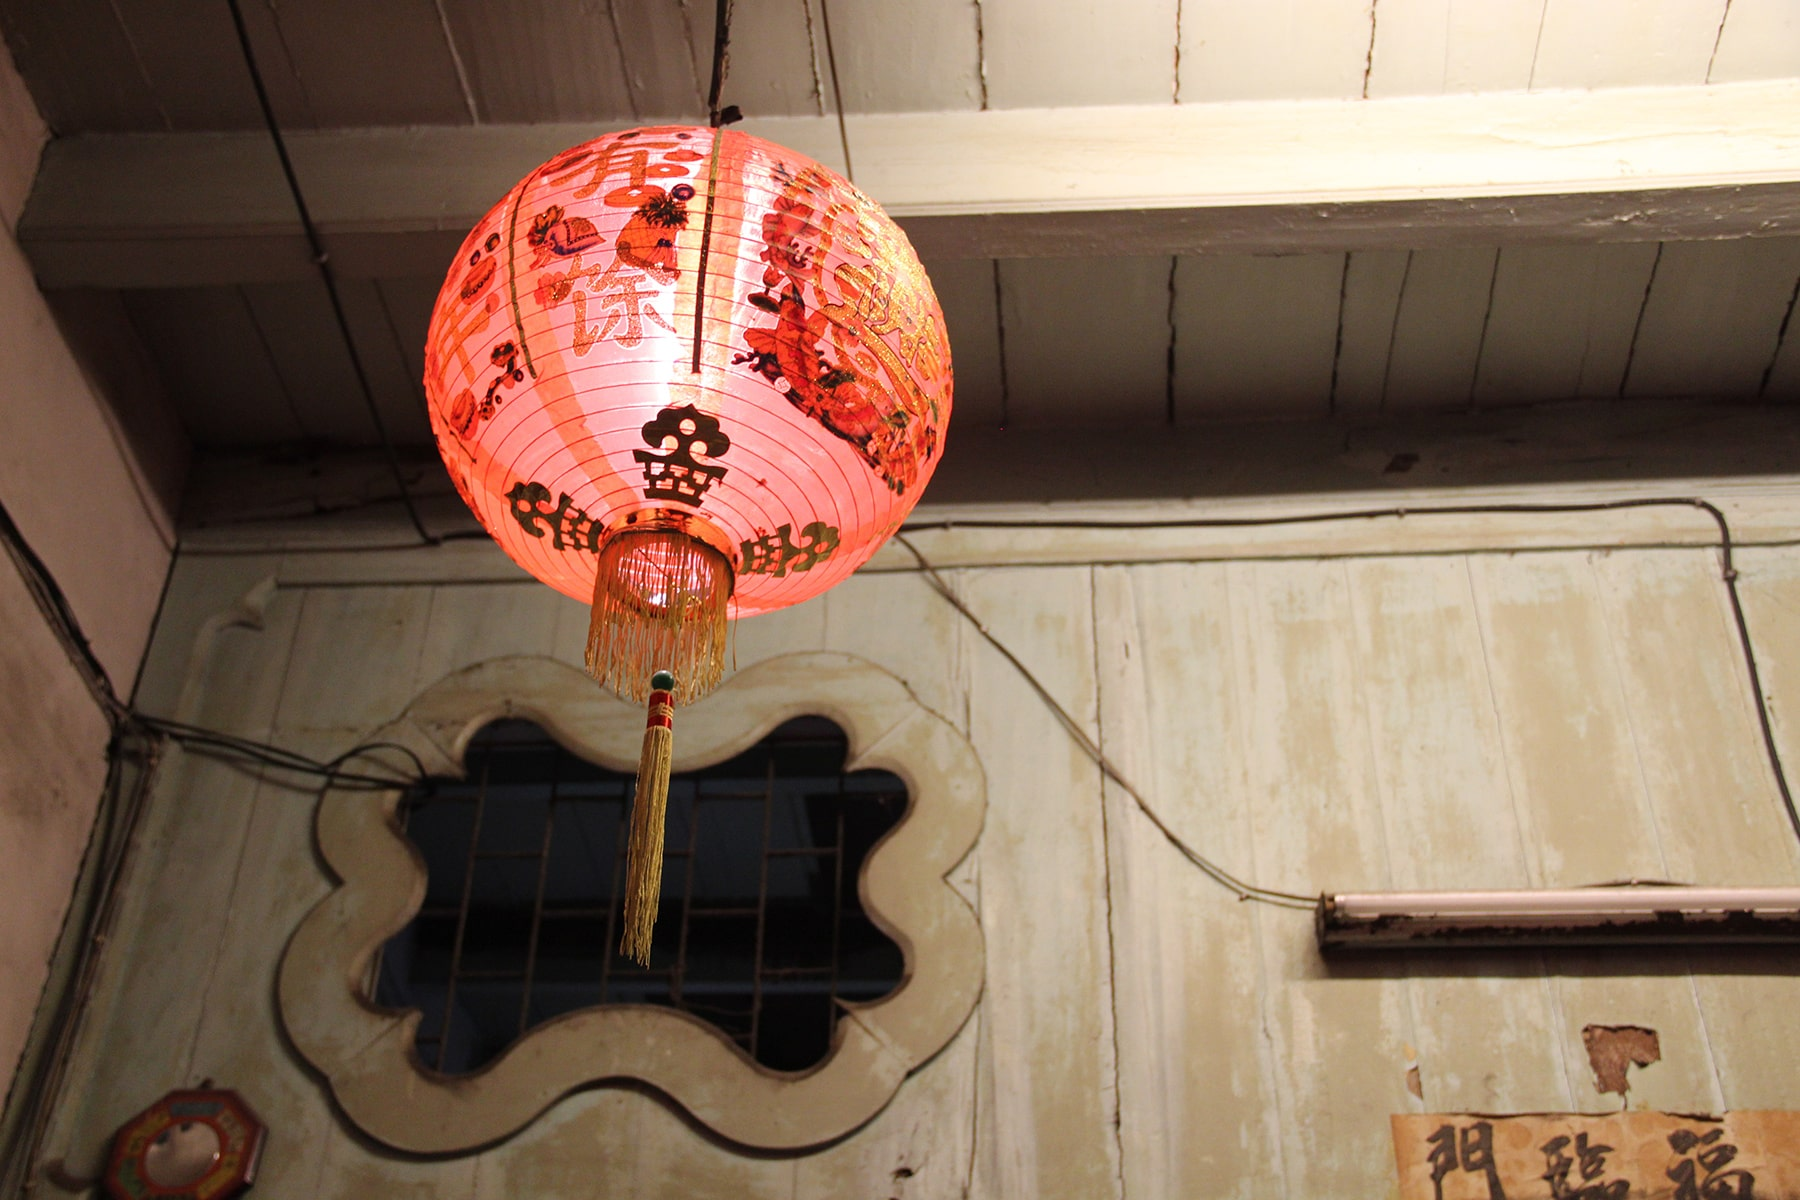 Chinese lamps hanging in Phuket Town